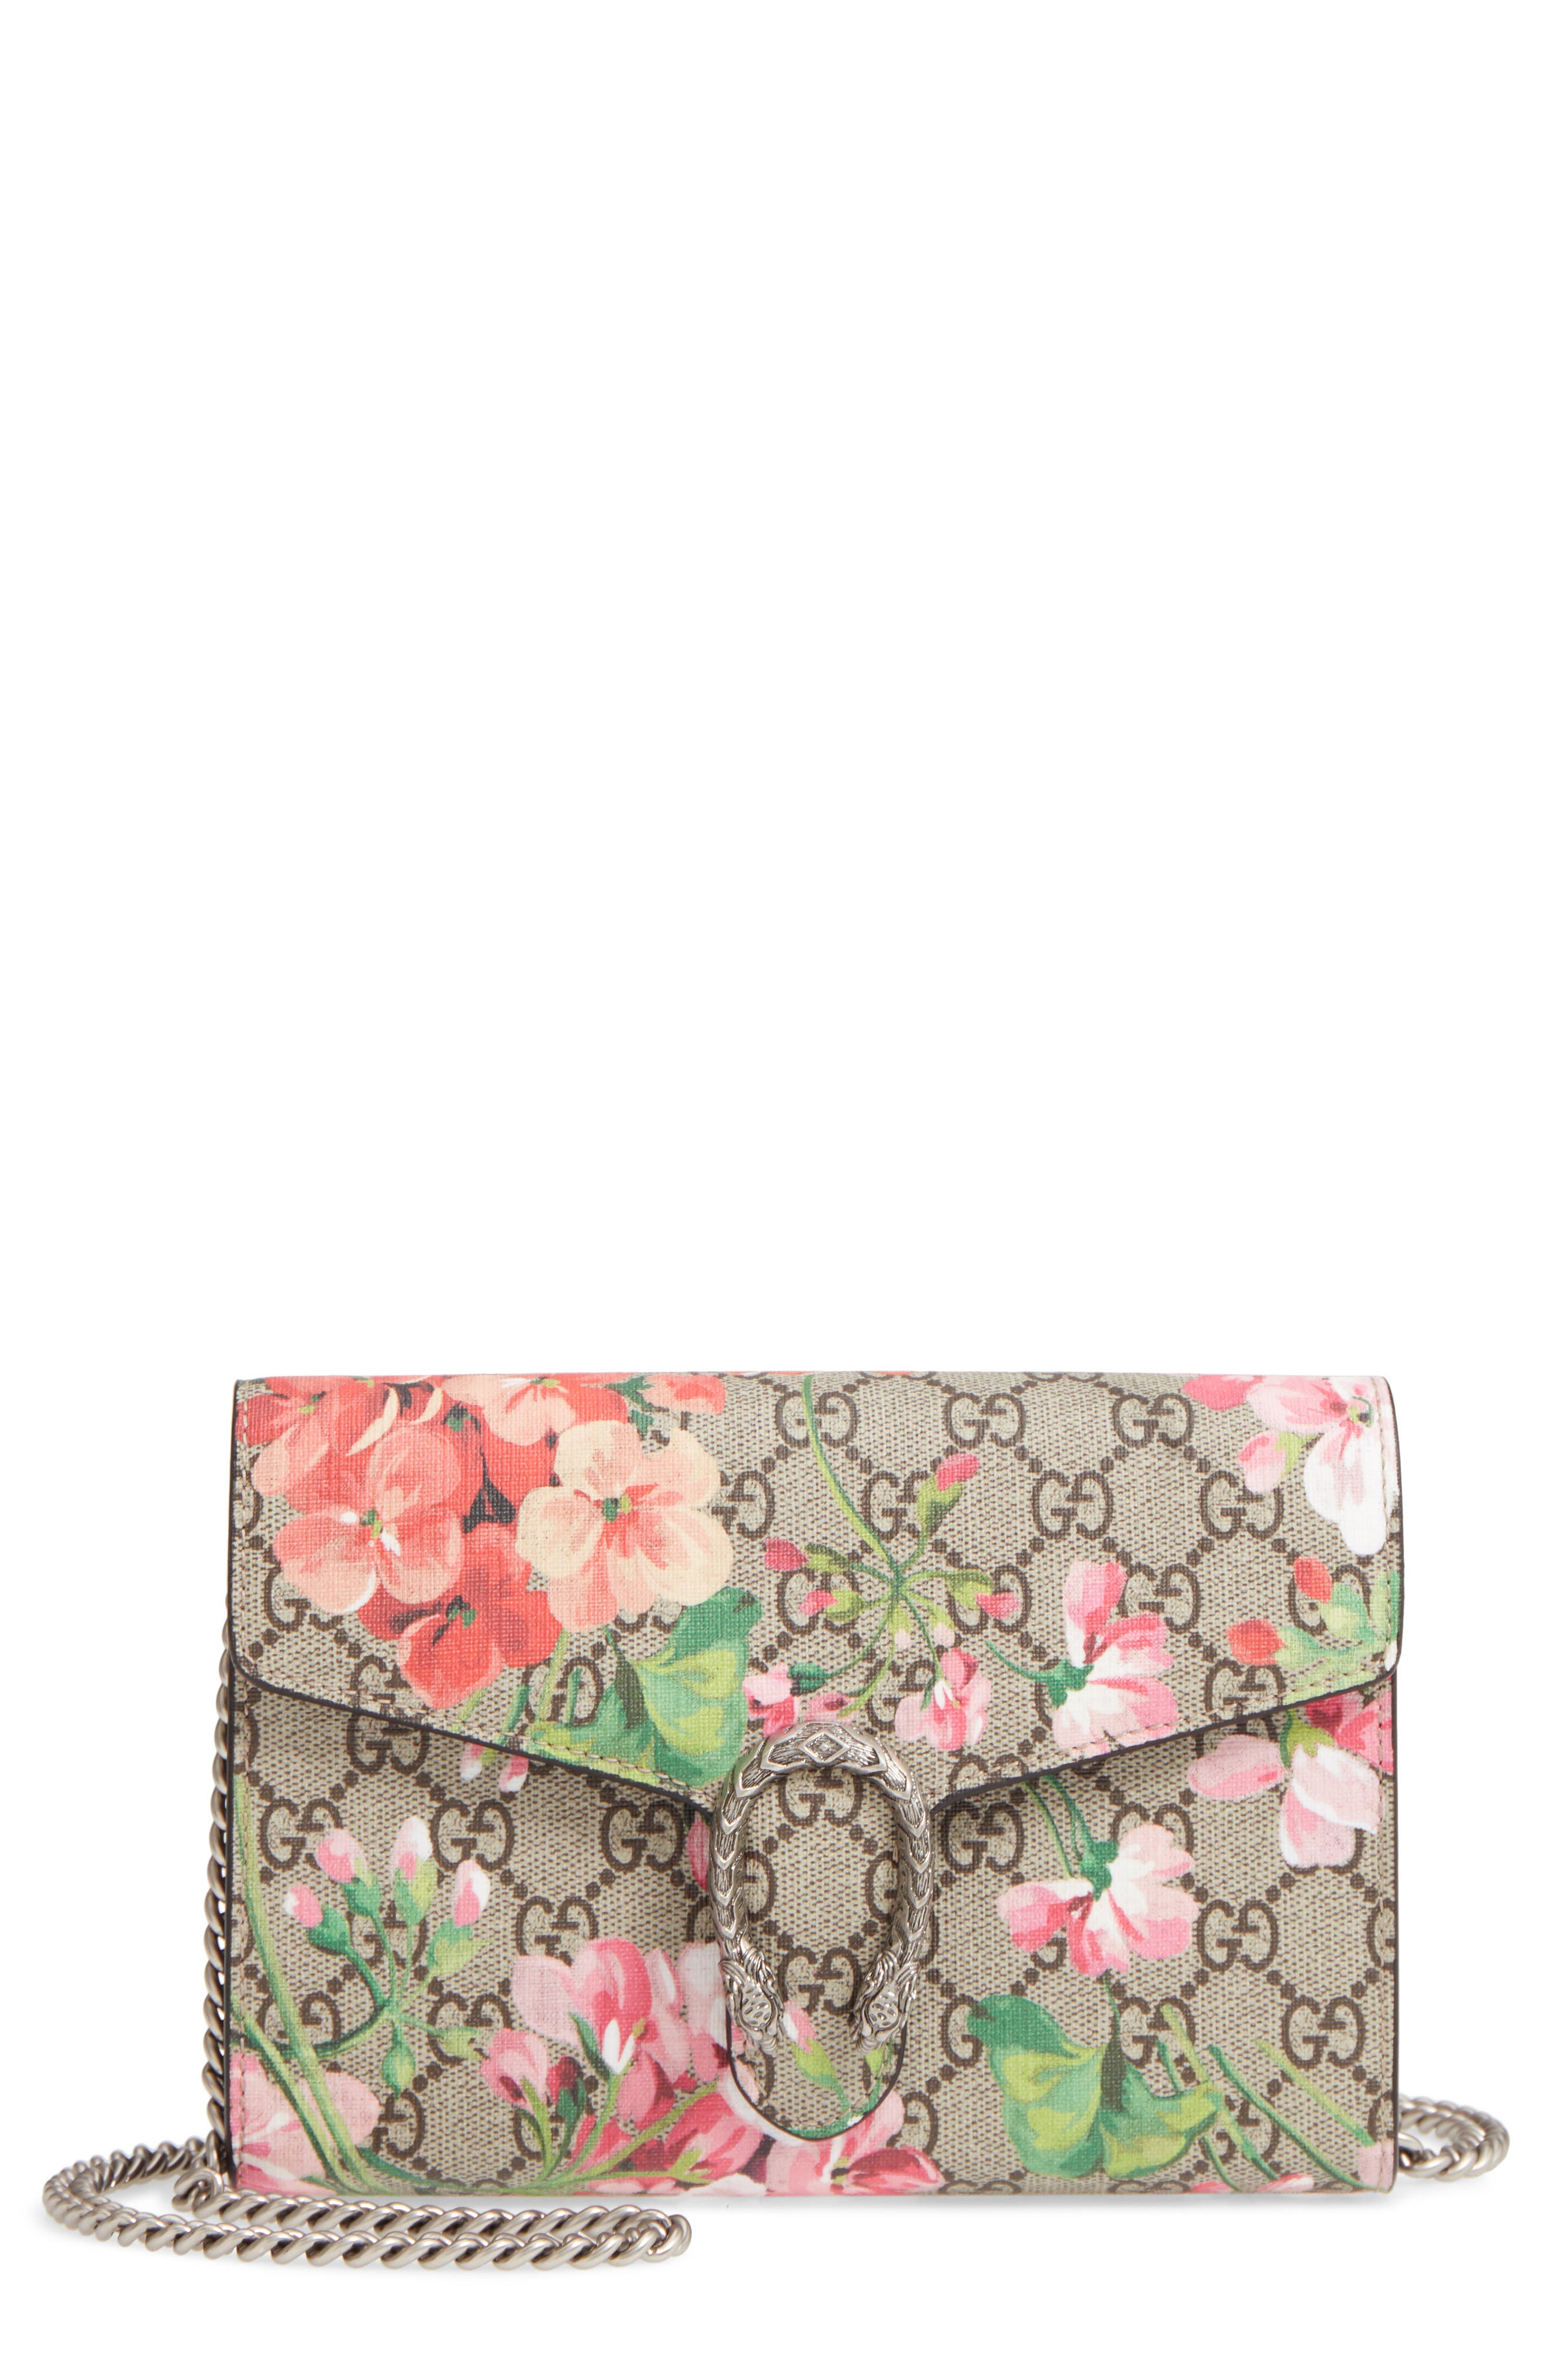 GUCCI, Blooms GG Supreme Canvas Wallet on a Chain, Main thumbnail 1, color, BEIGE EBONY/ DRY ROSE